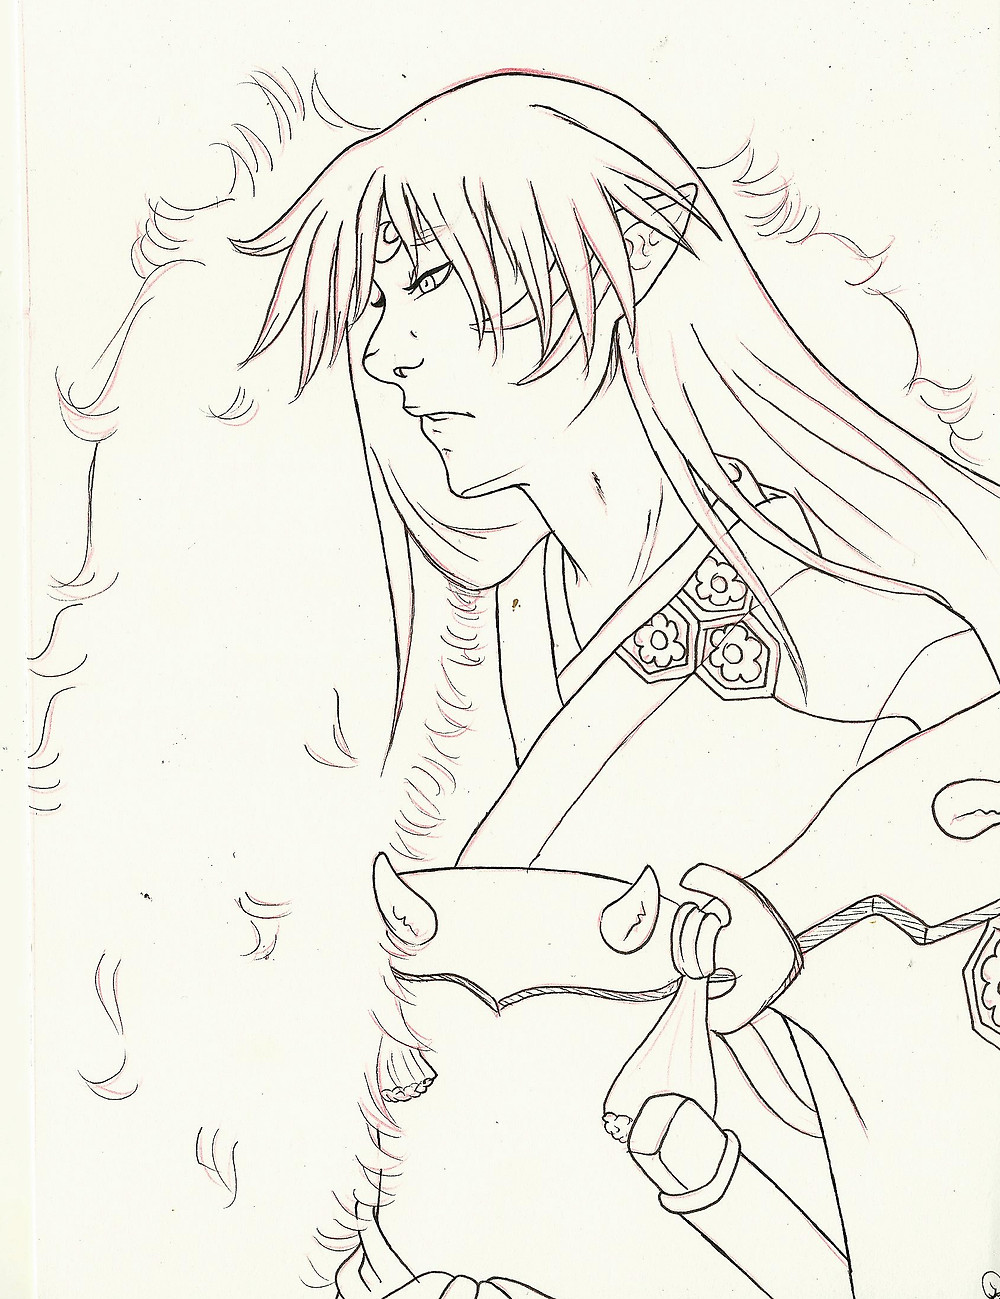 Privately commissioned piece of Sesshoumaru from Inuyasha. He is colored but I do not have a scan just yet.